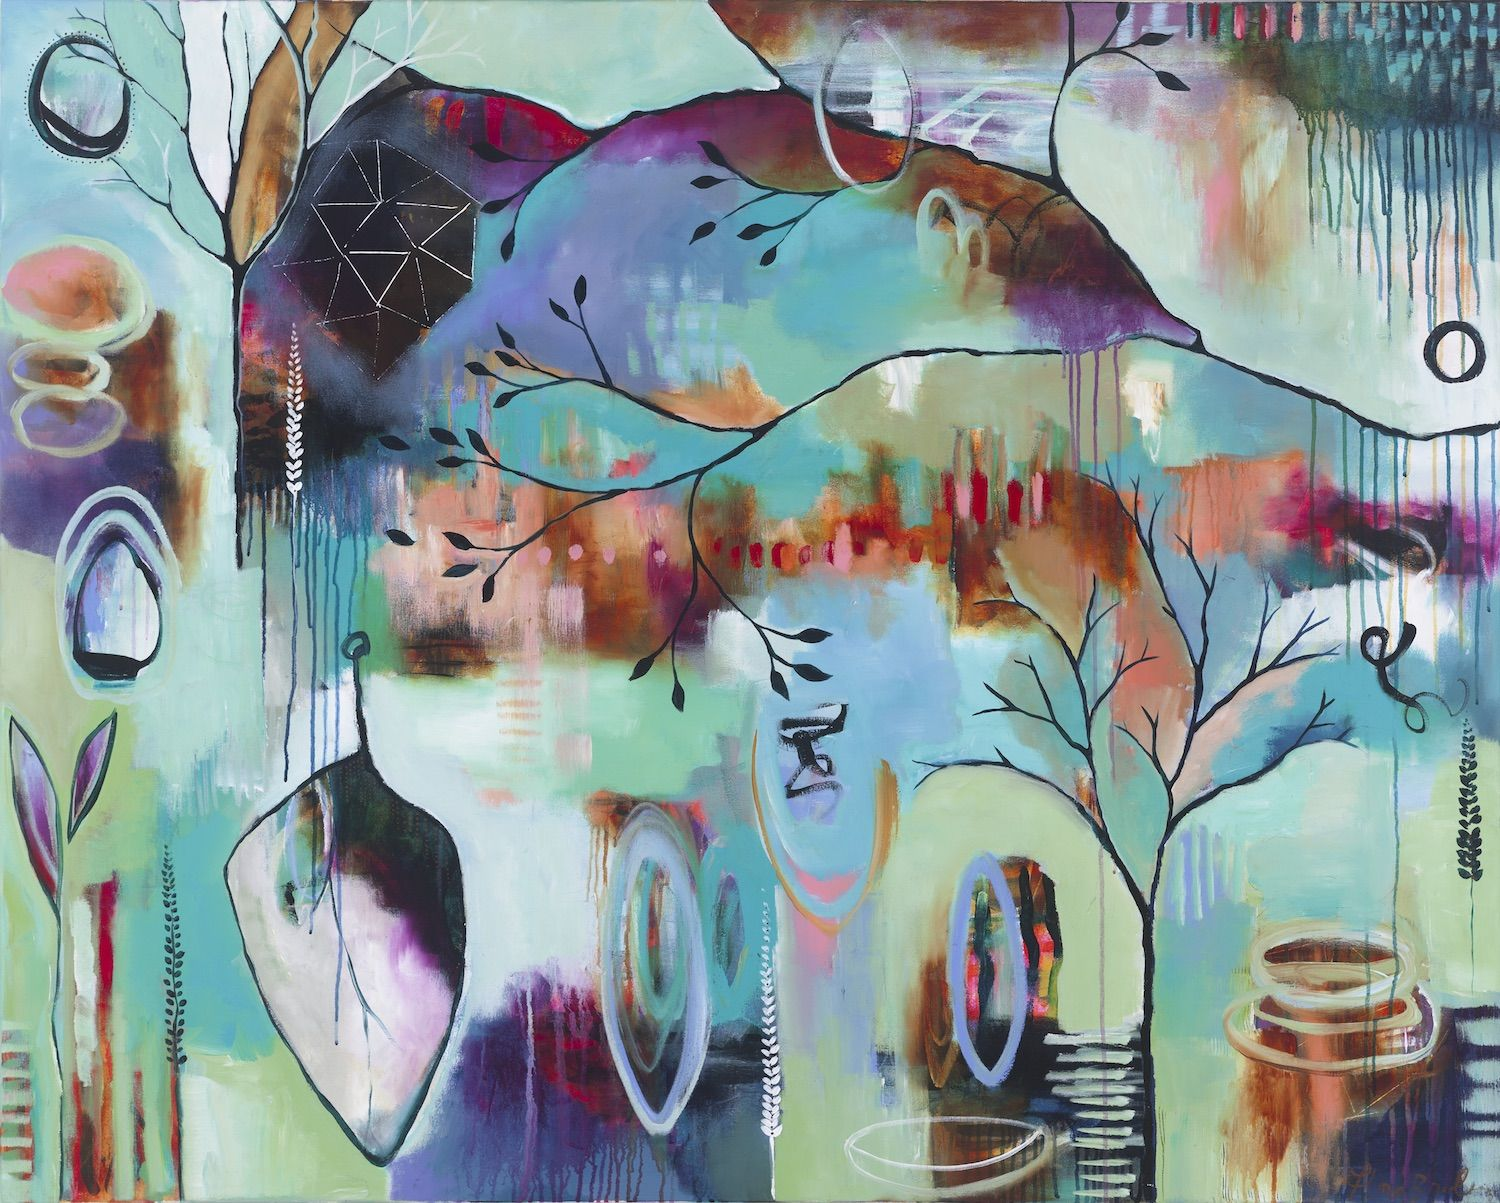 Full Circle 2016 Acrylic On Canvas 48 X 60 In Florabowley Braveintuitivepainting Flora Bowley Abstract Art Painting Art